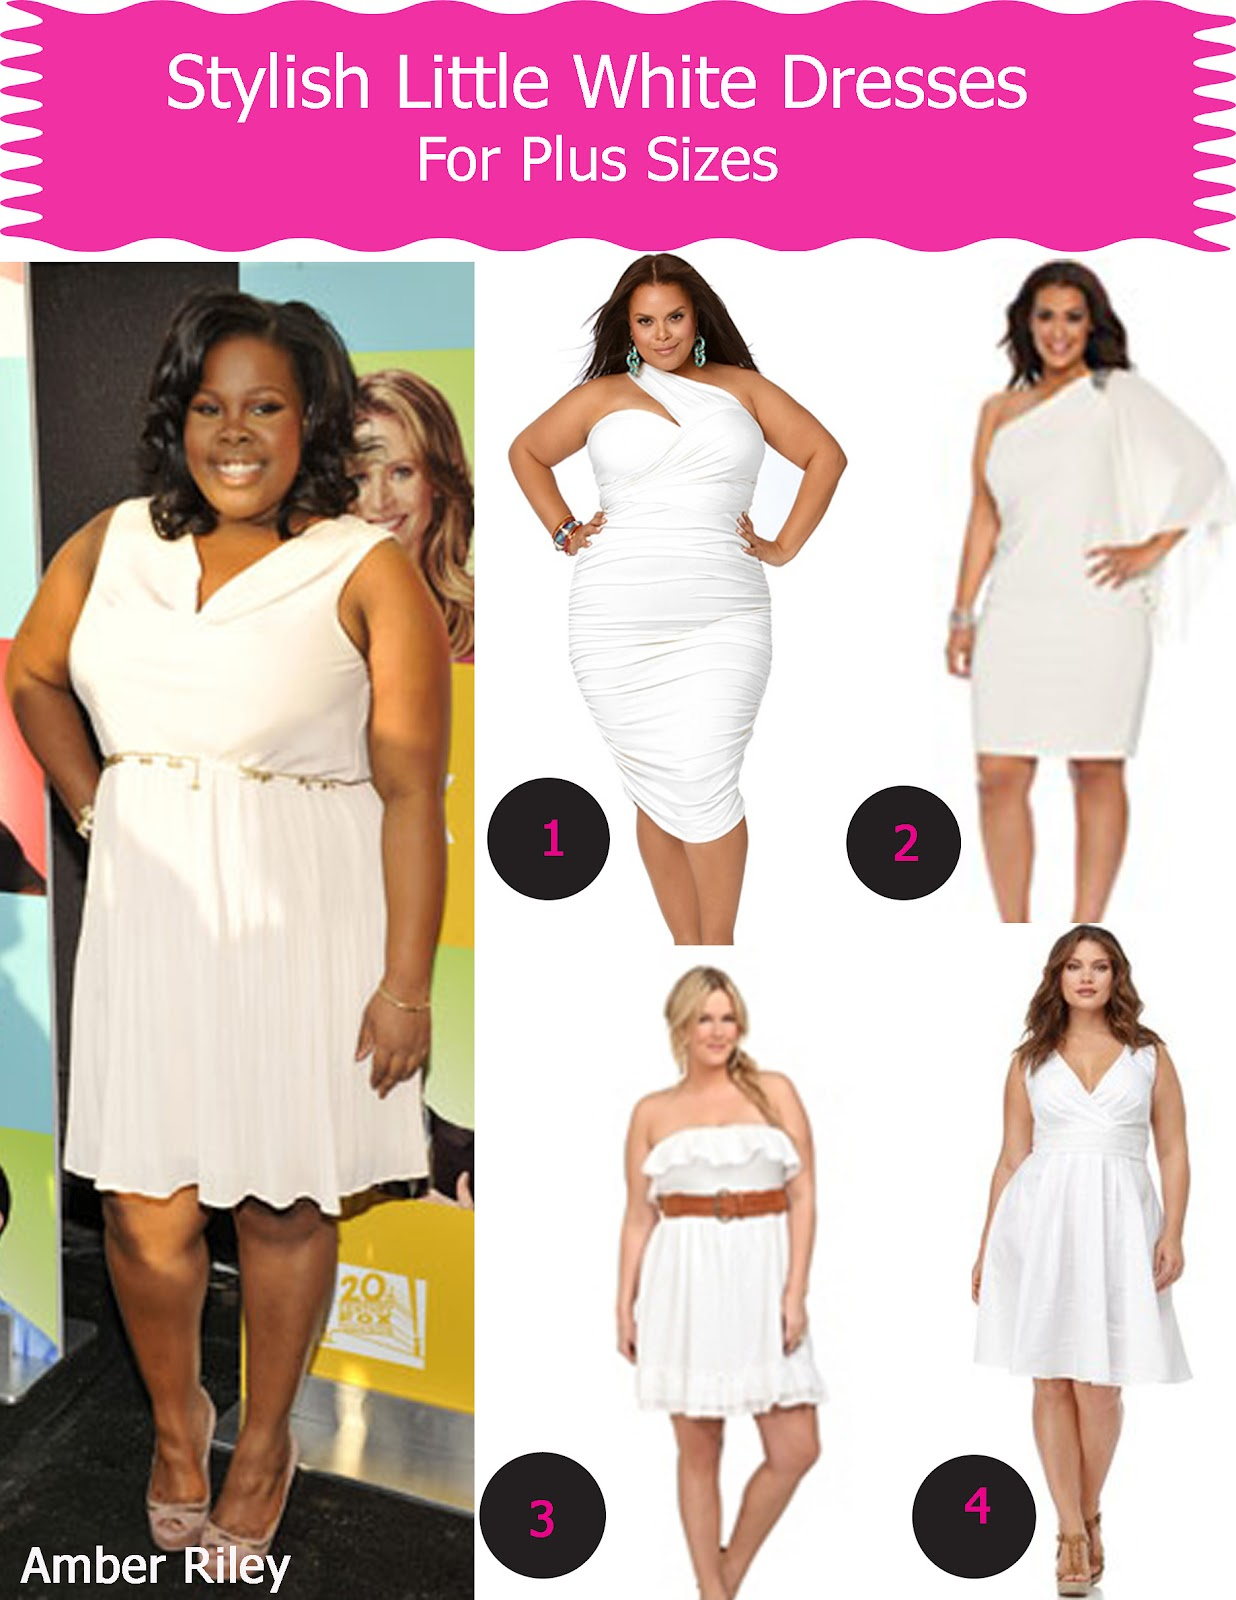 72e8ae6caf82d STYLISH LITTLE WHITE DRESSES FOR PLUS SIZES